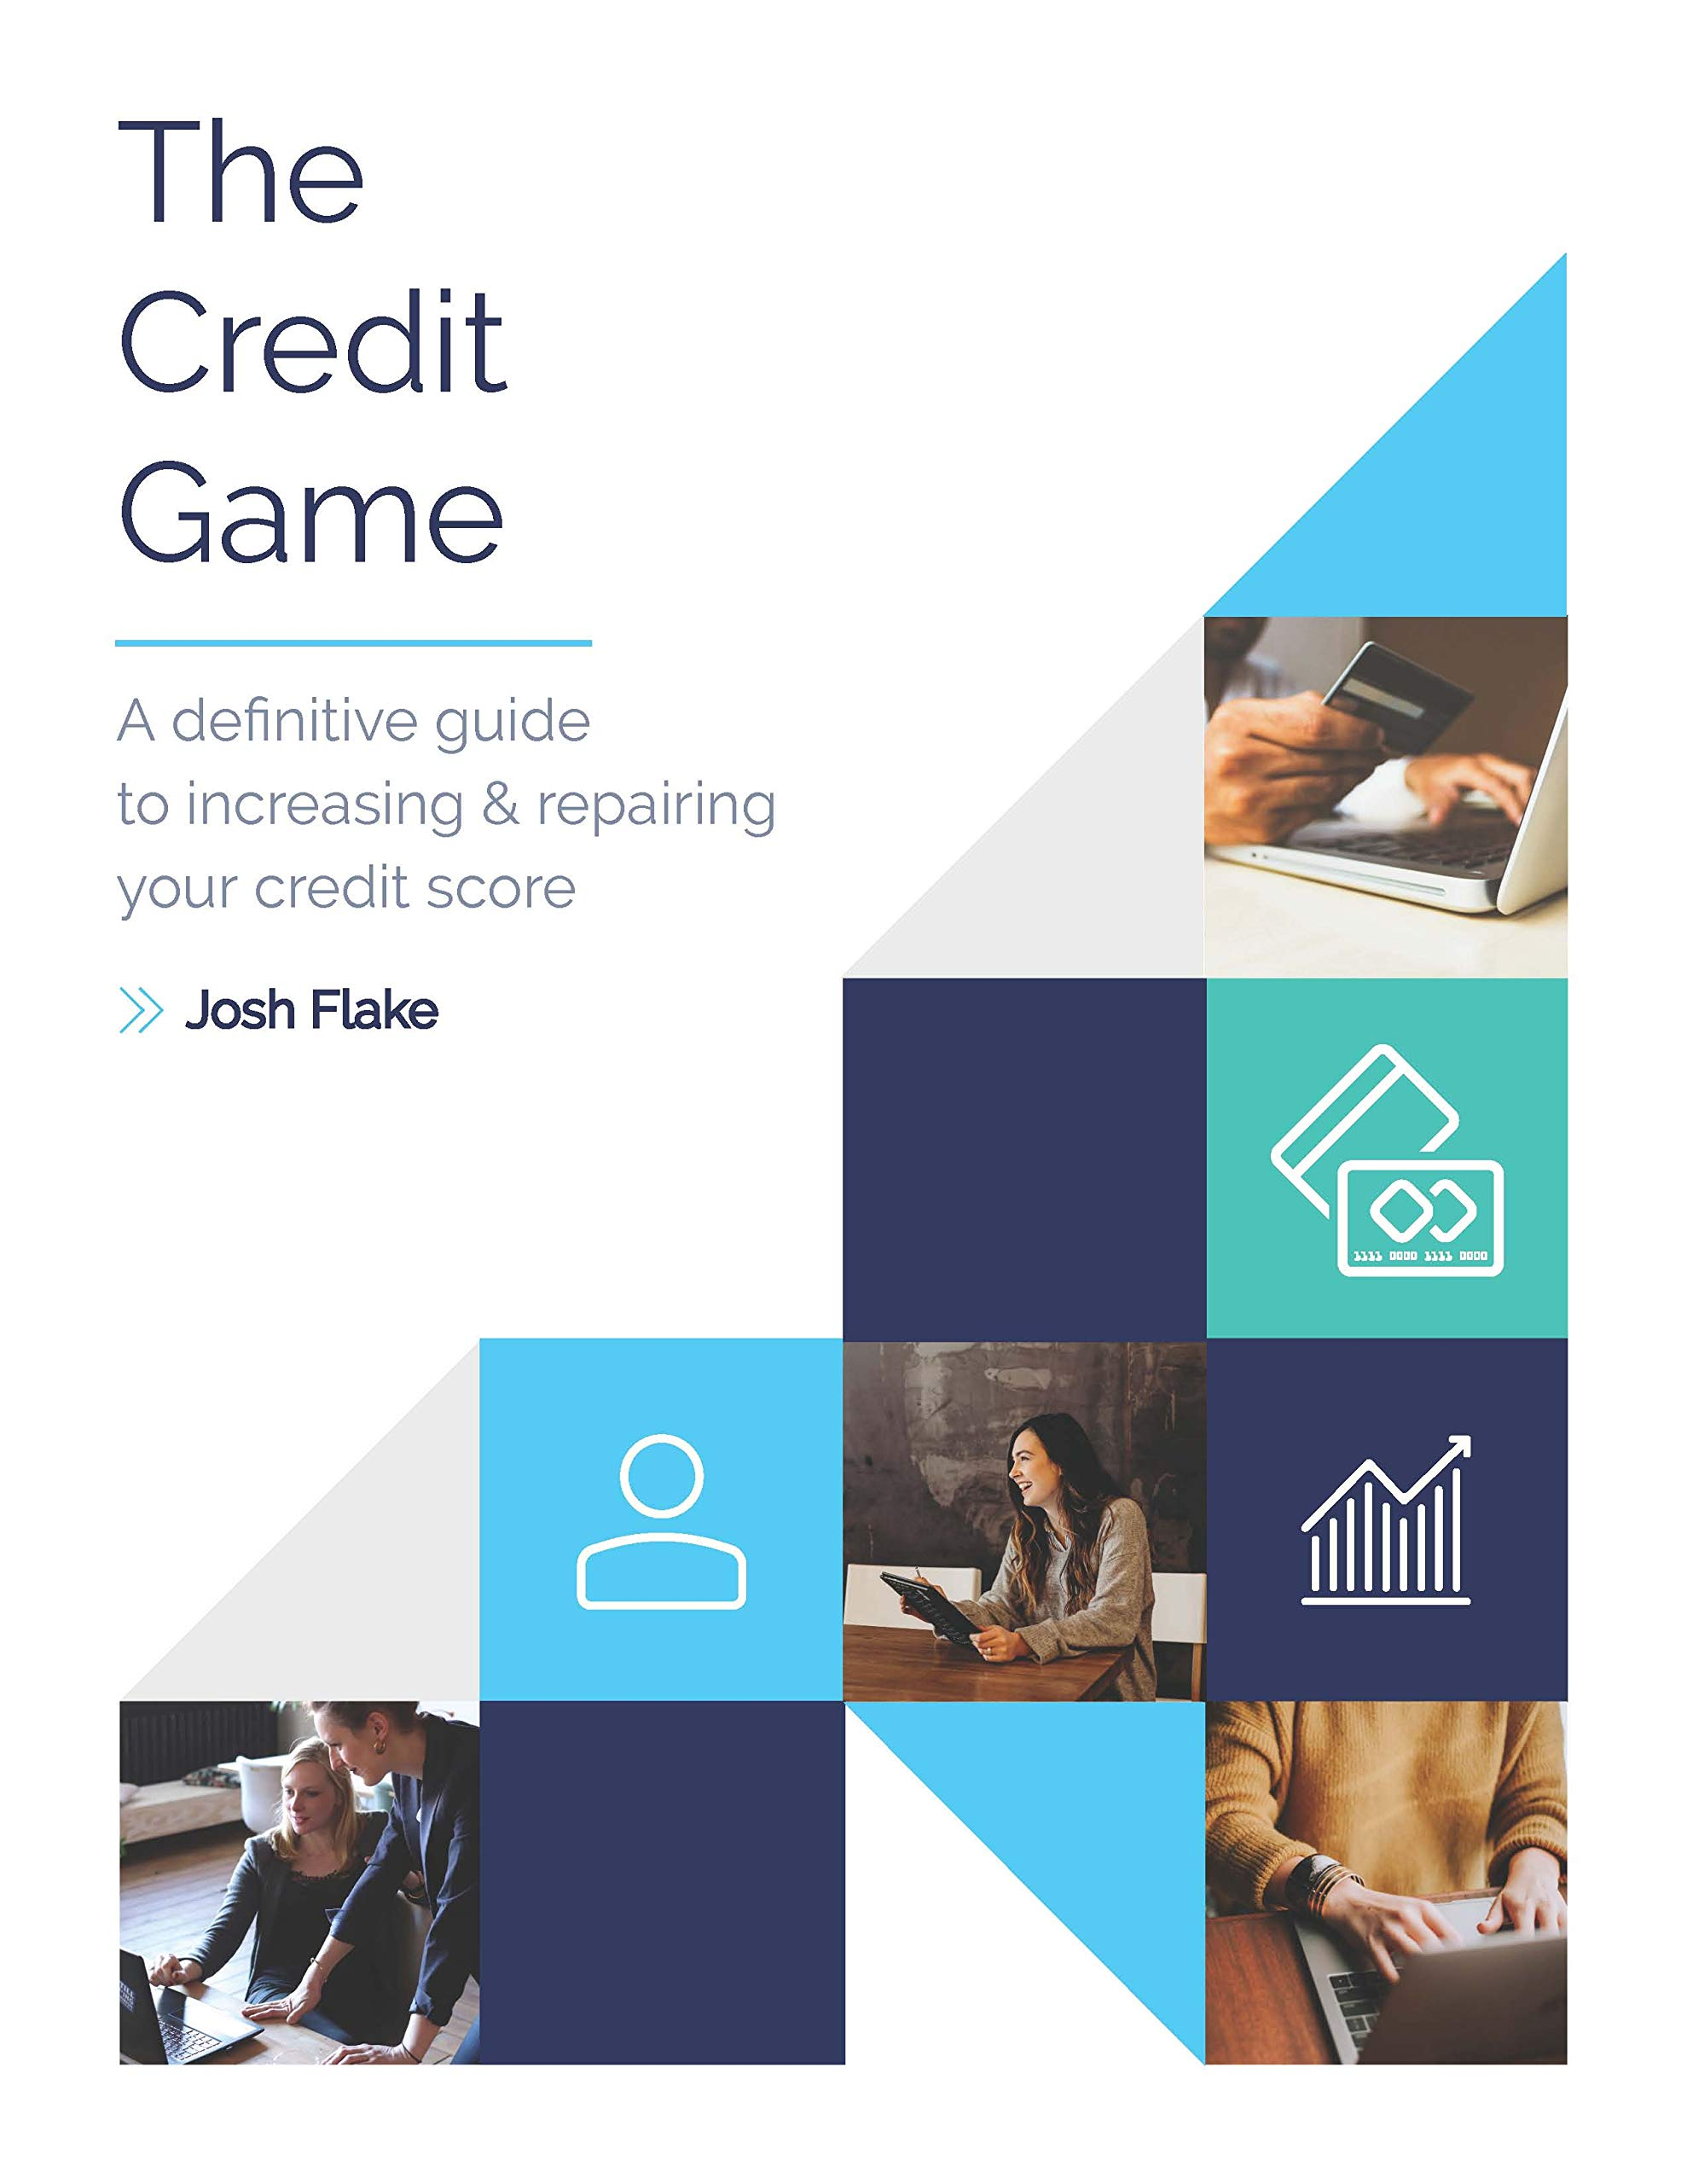 The Credit Game: A definitive guide to increasing & repairing your credit score